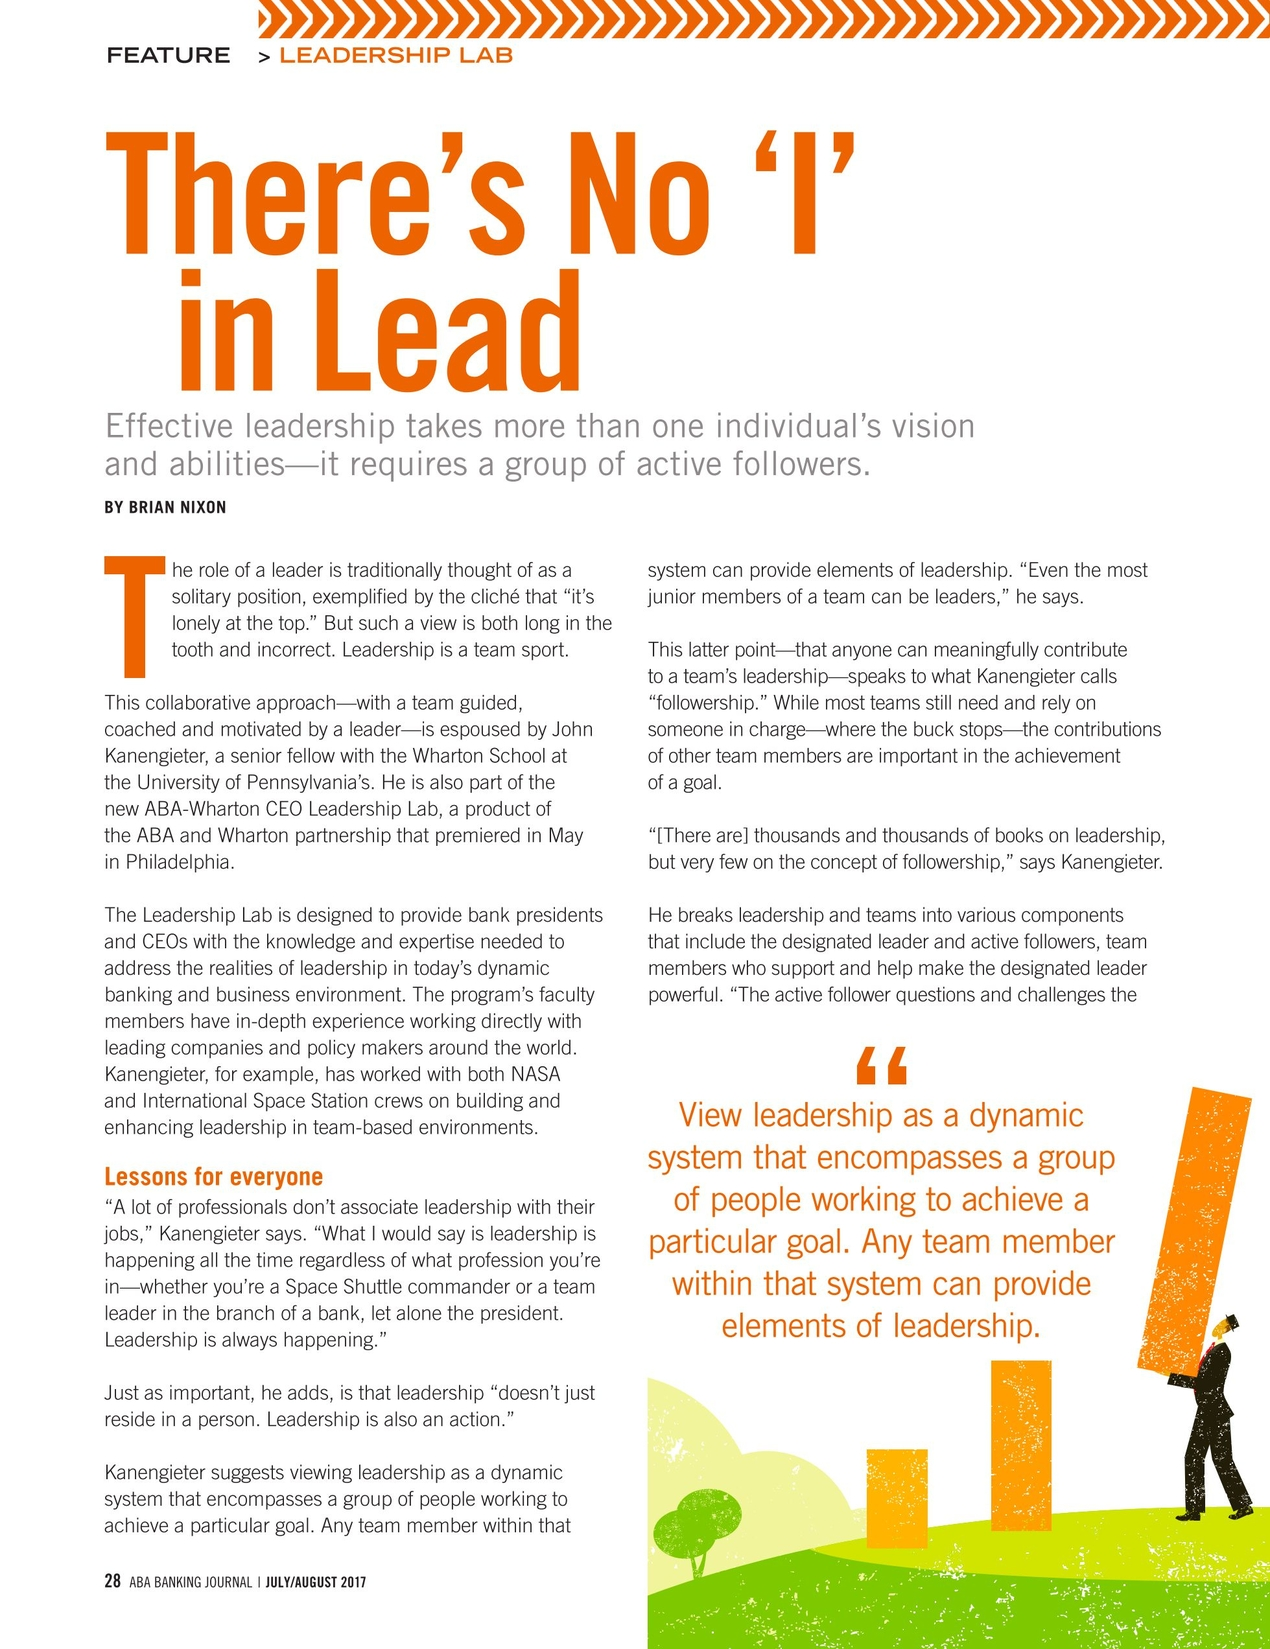 followership what it takes to lead